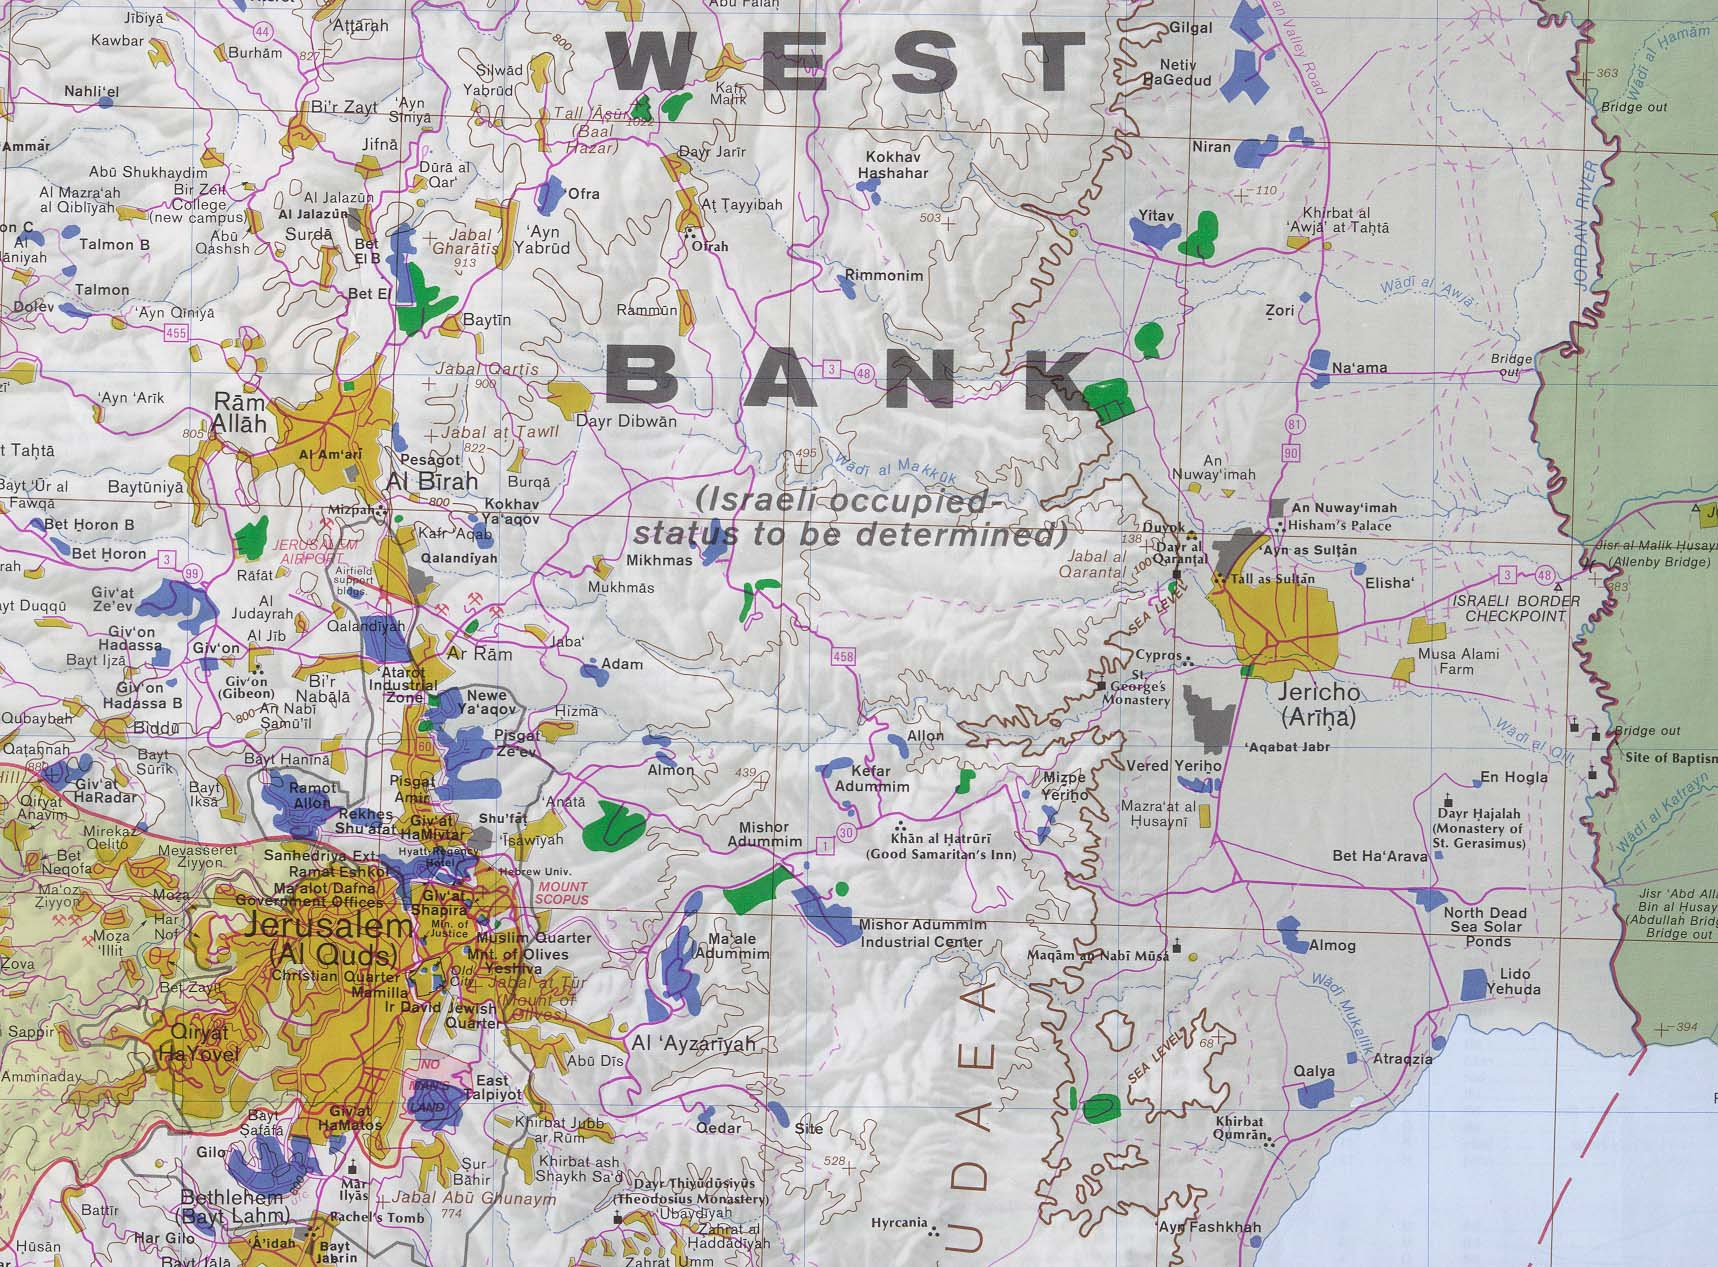 Download free palestine maps west bank jerusalem and east includes jericho gumiabroncs Image collections